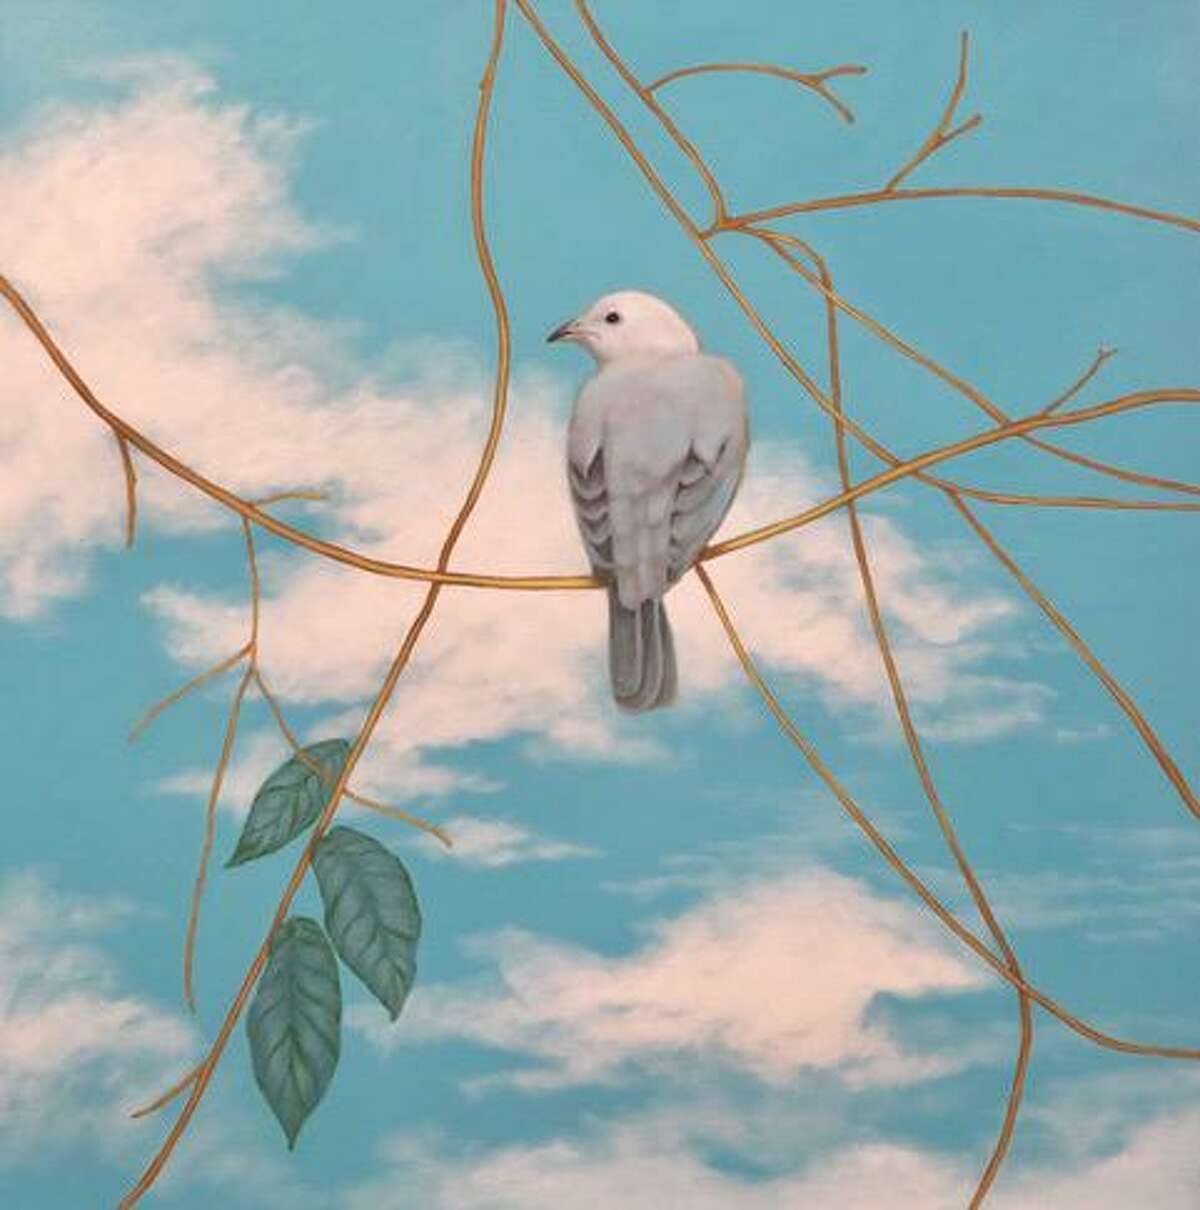 Redding artist Erin Nazarro submitted her painting